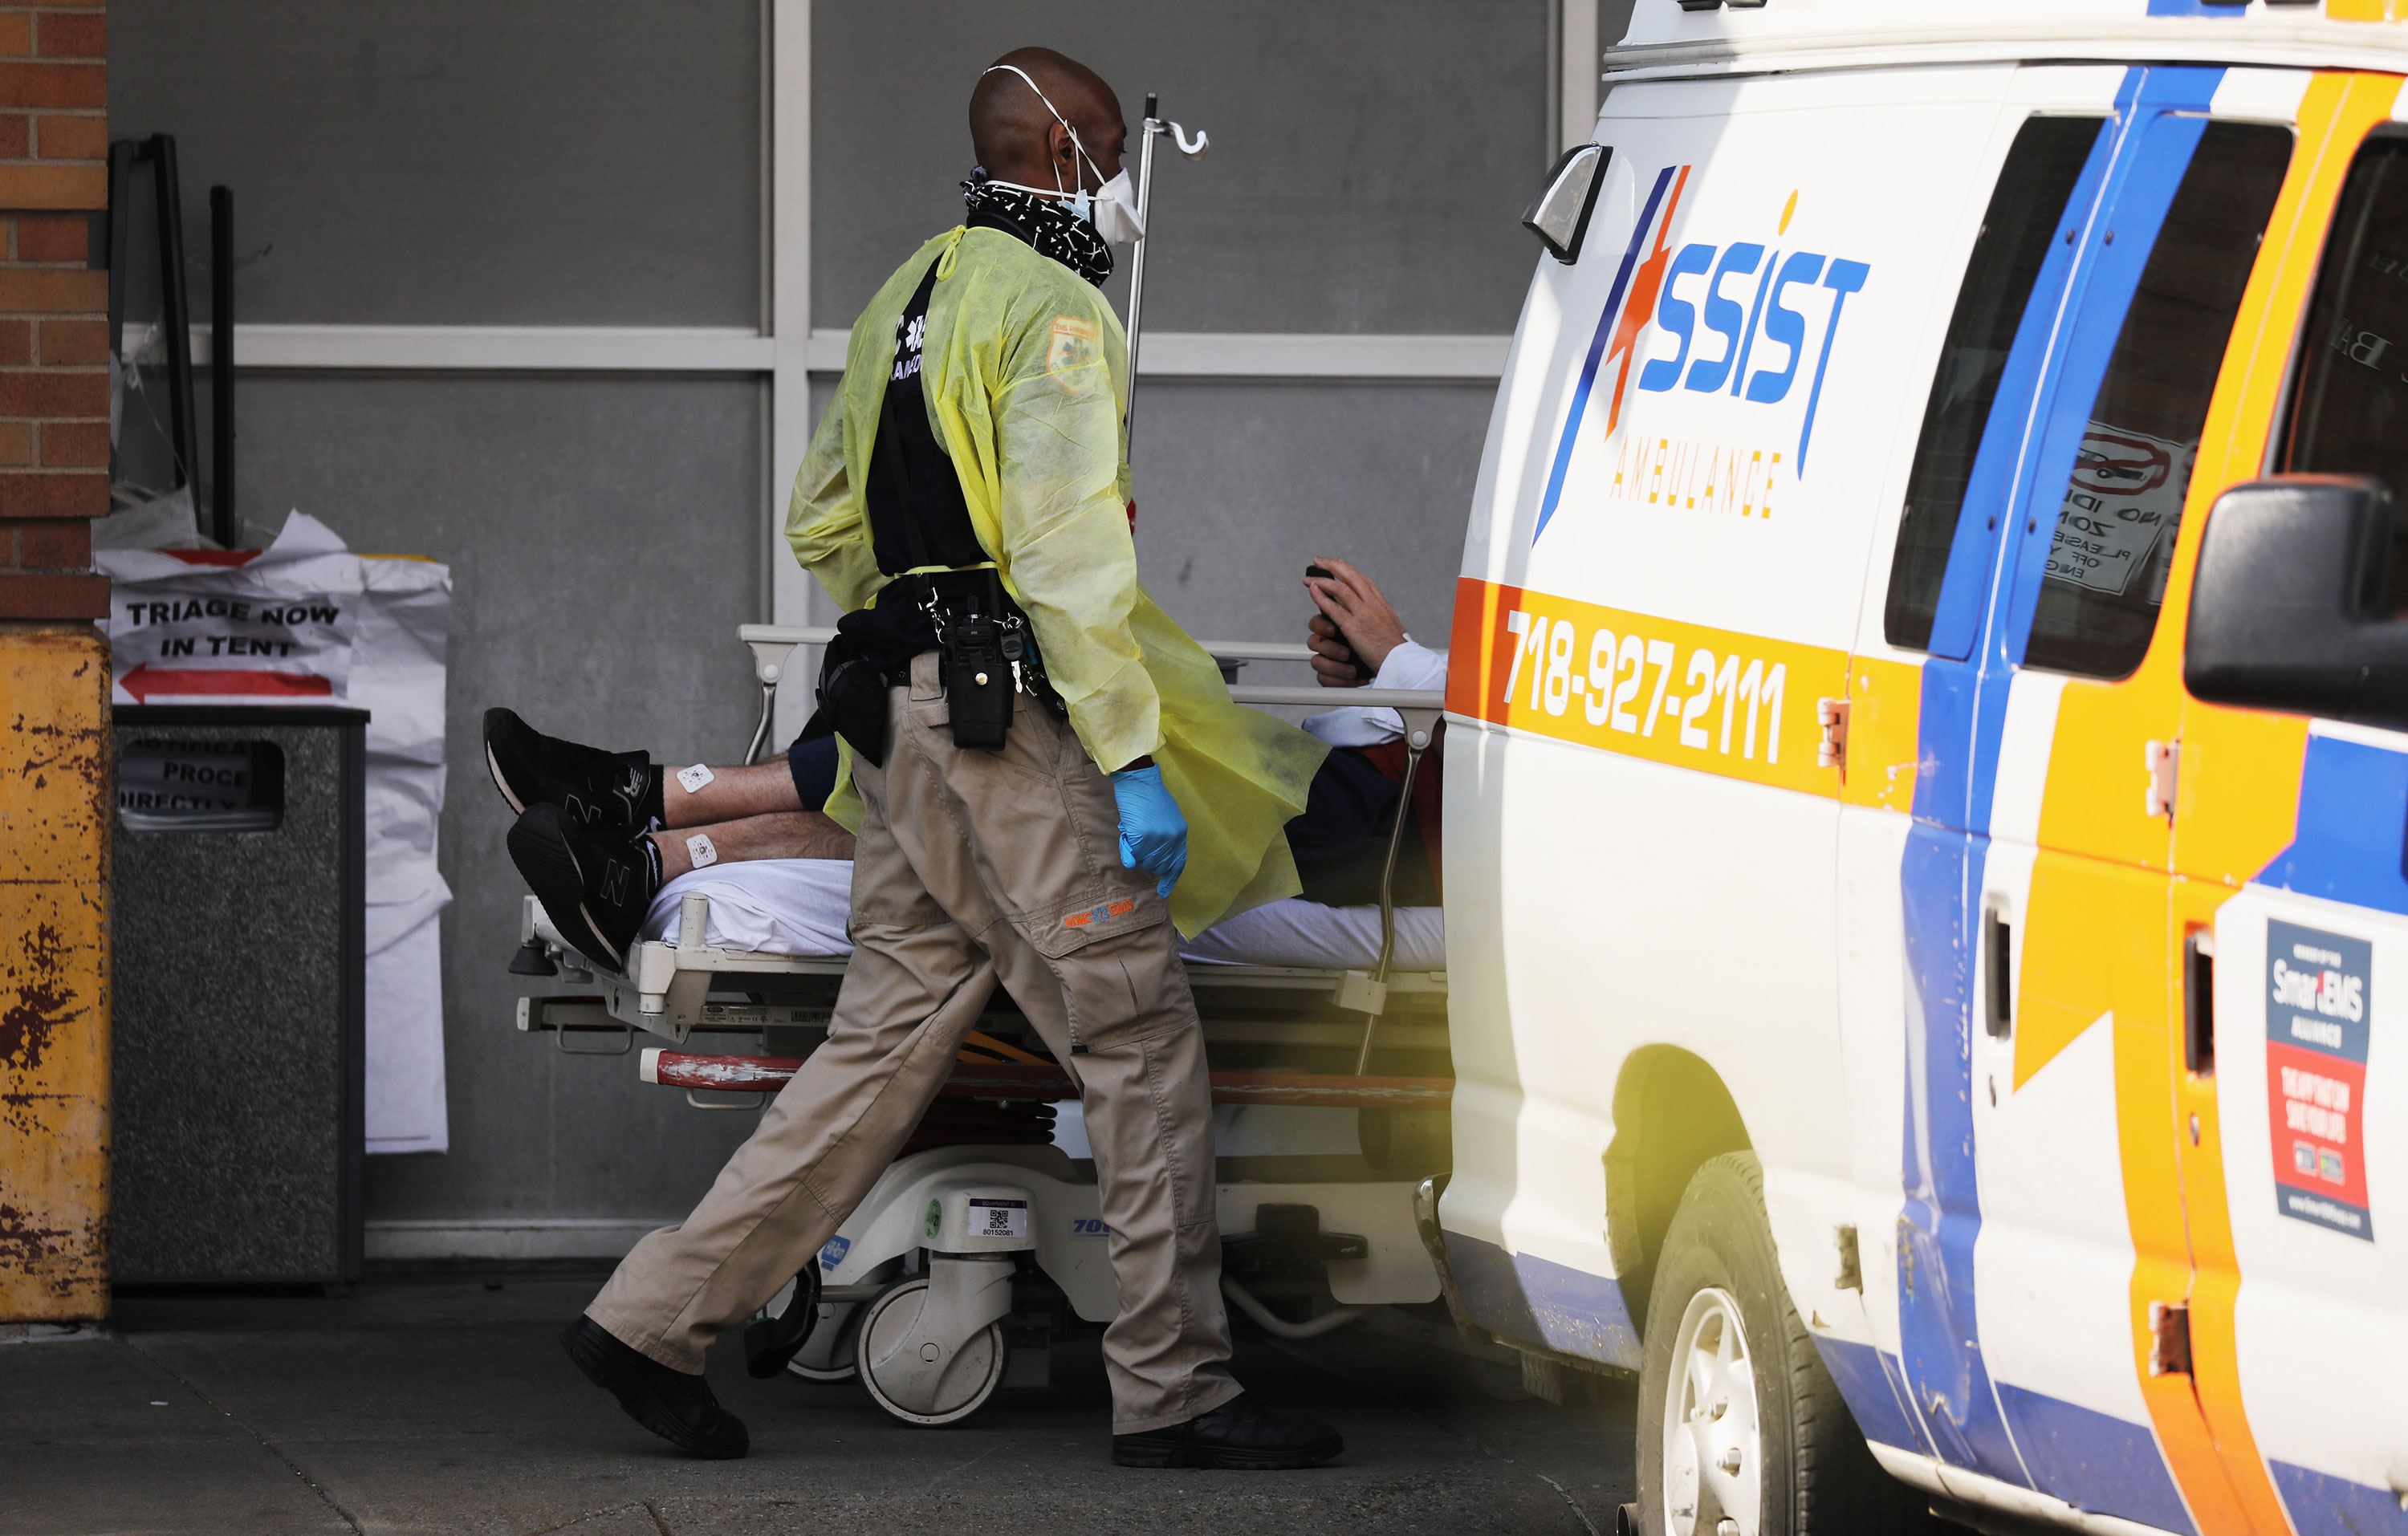 A medical worker transports a patient at a coronavirus intake area at Maimonides Medical Center on April 12, in the Brooklyn borough of New York City.